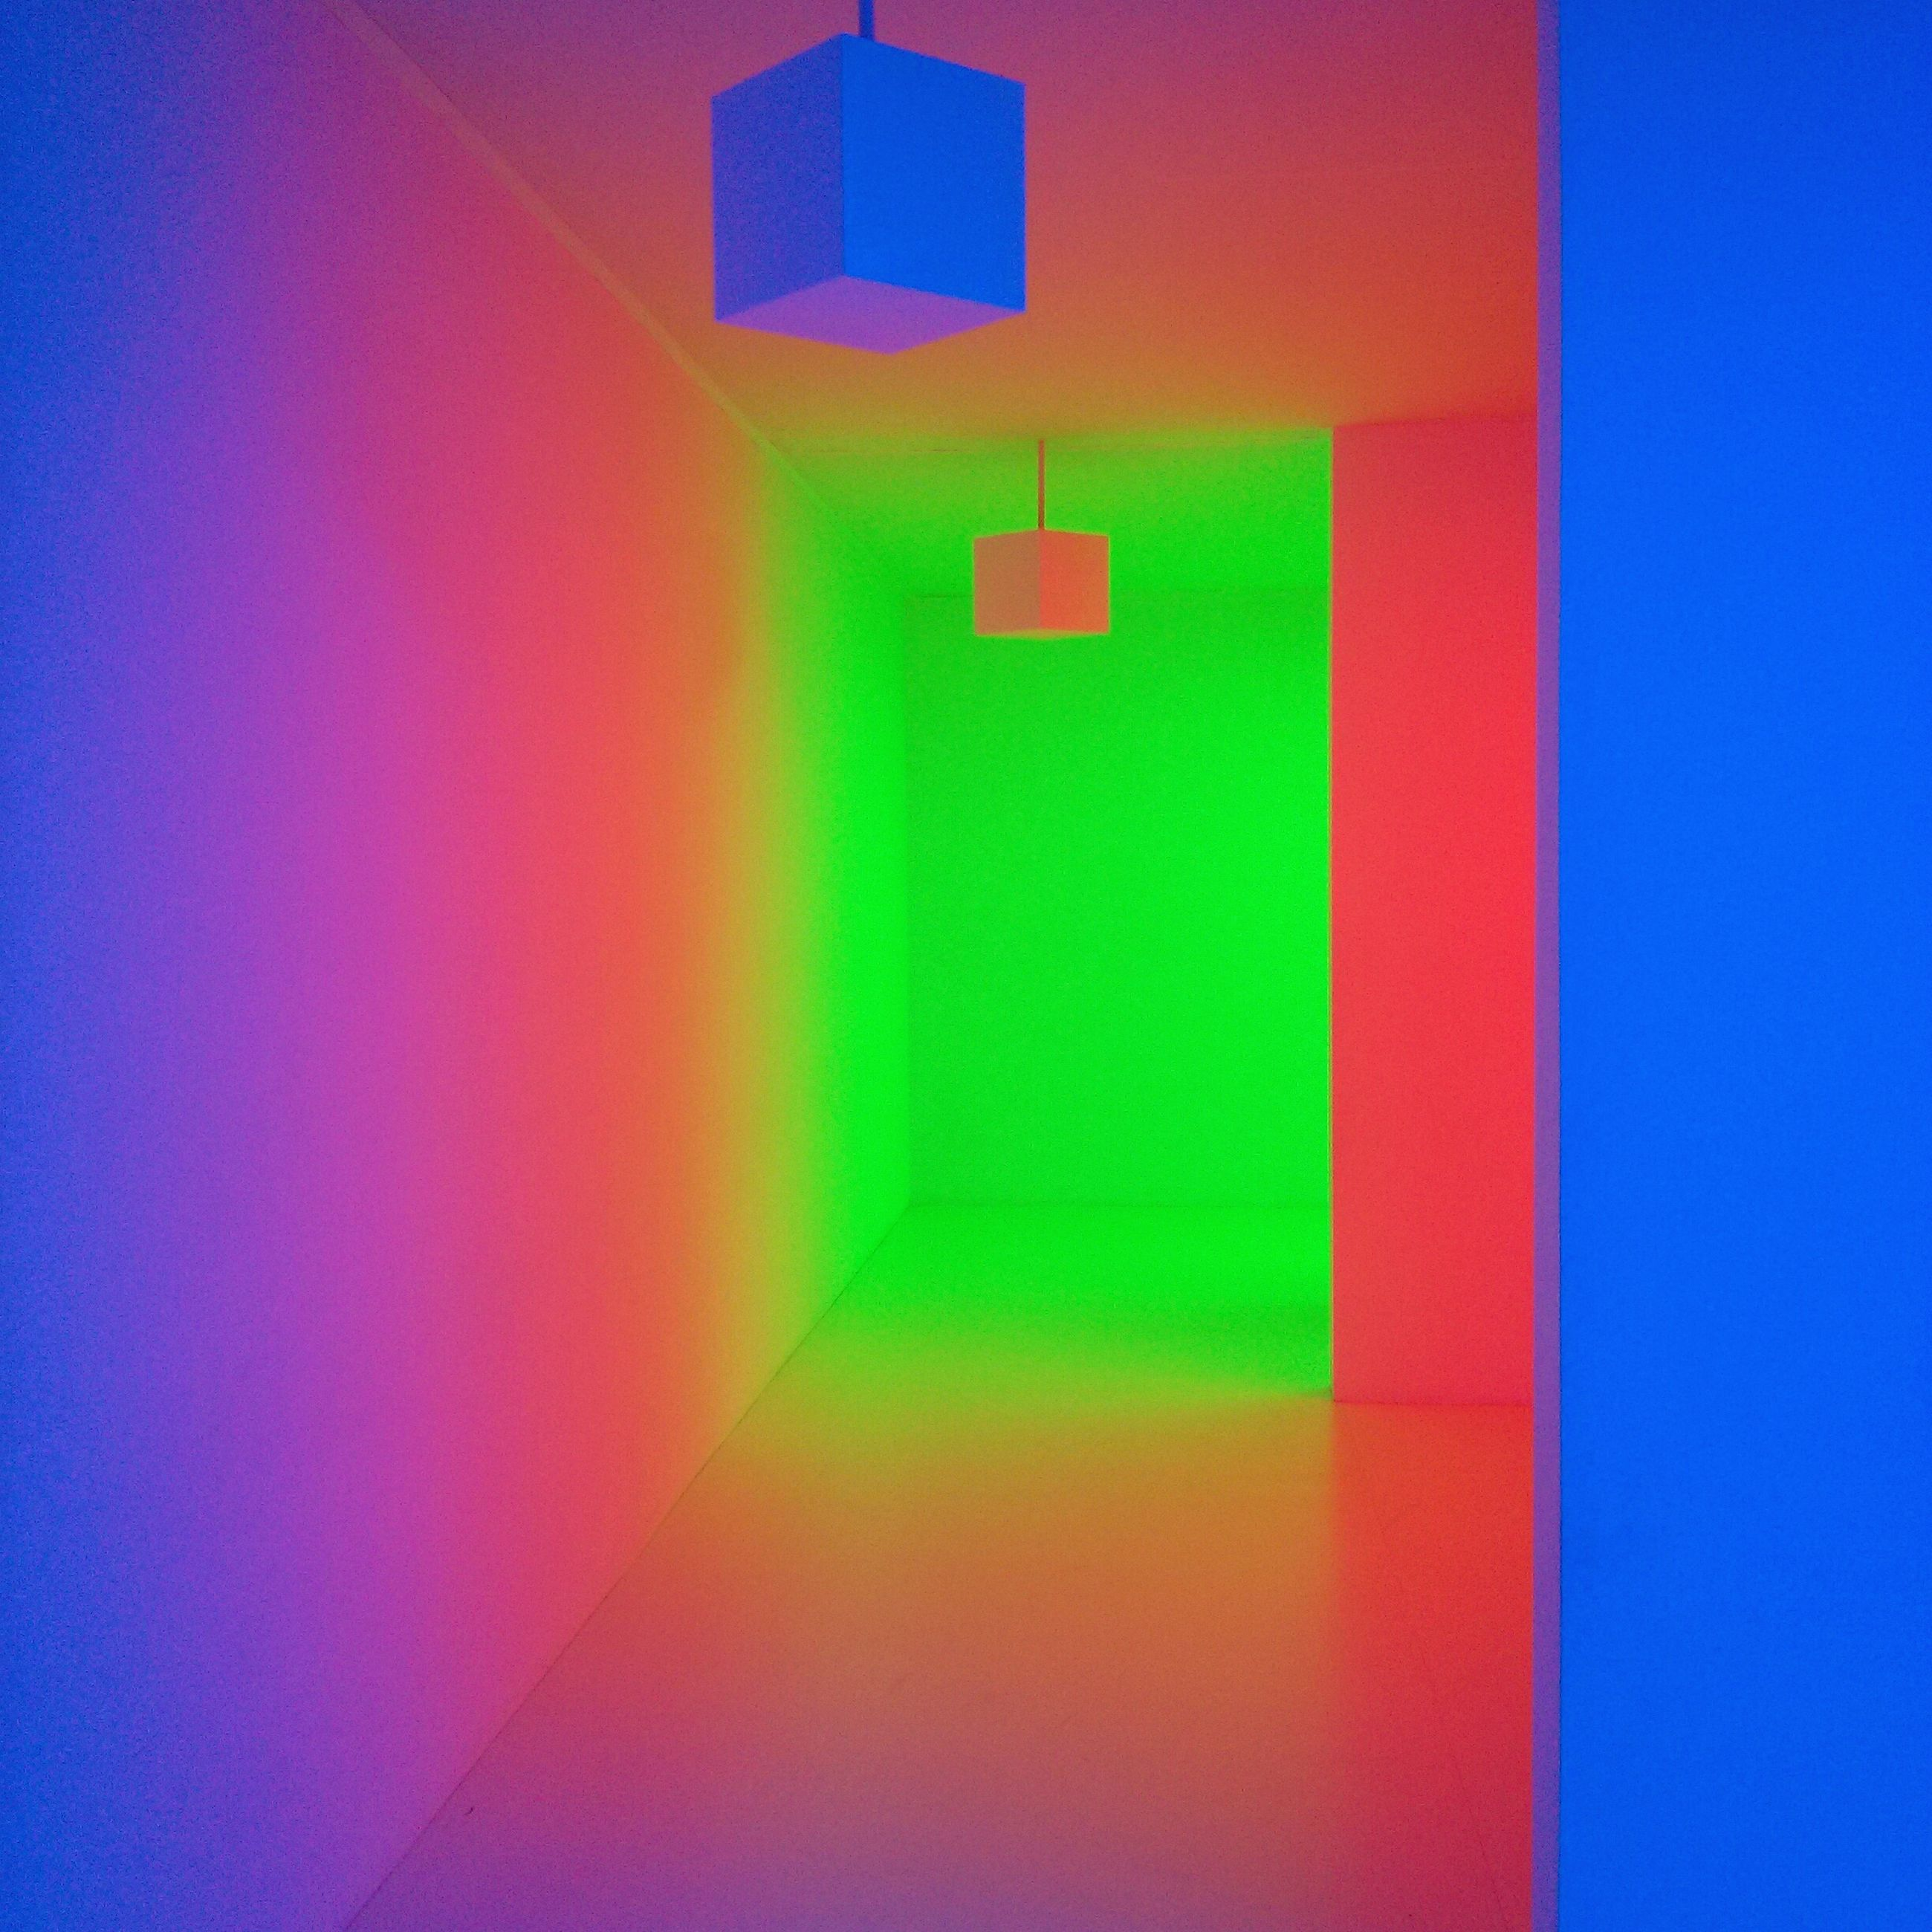 blue, indoors, wall - building feature, multi colored, illuminated, wall, red, built structure, architecture, communication, no people, colorful, lighting equipment, green color, copy space, guidance, yellow, pattern, close-up, geometric shape